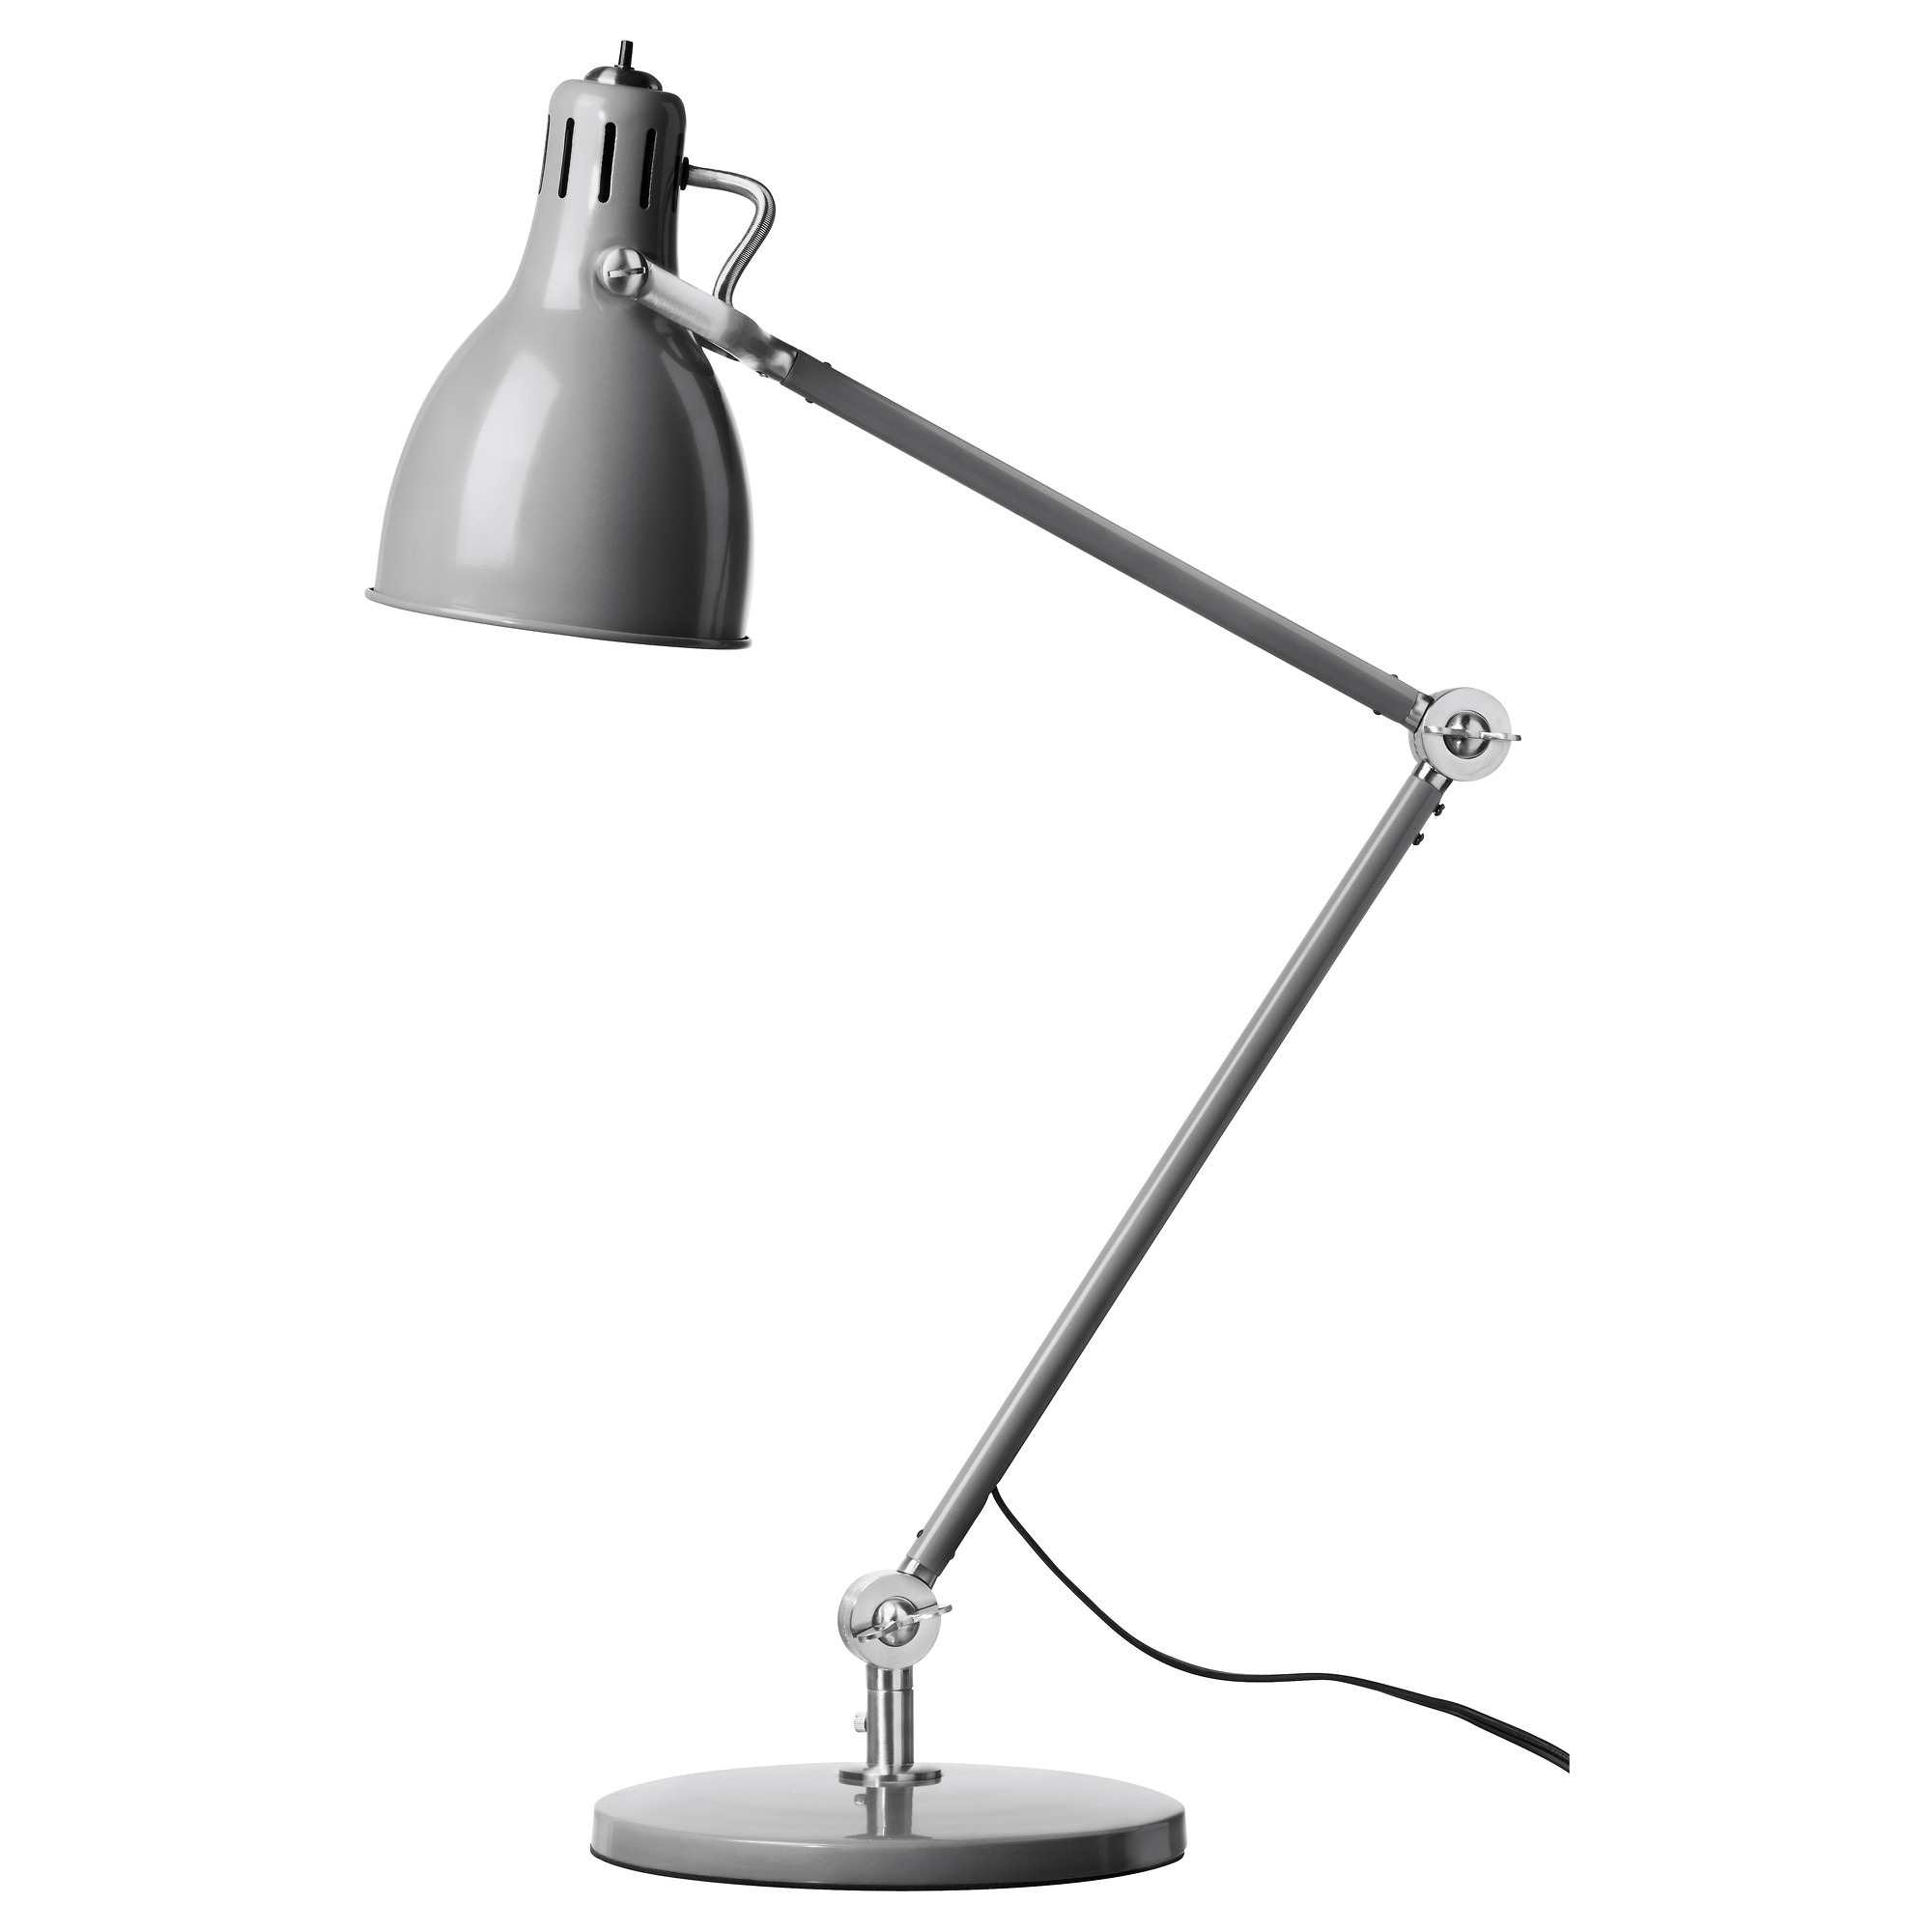 Ikea led desk lamp - Ar D Work Lamp With Led Bulb Gray Max 60 W Height 20